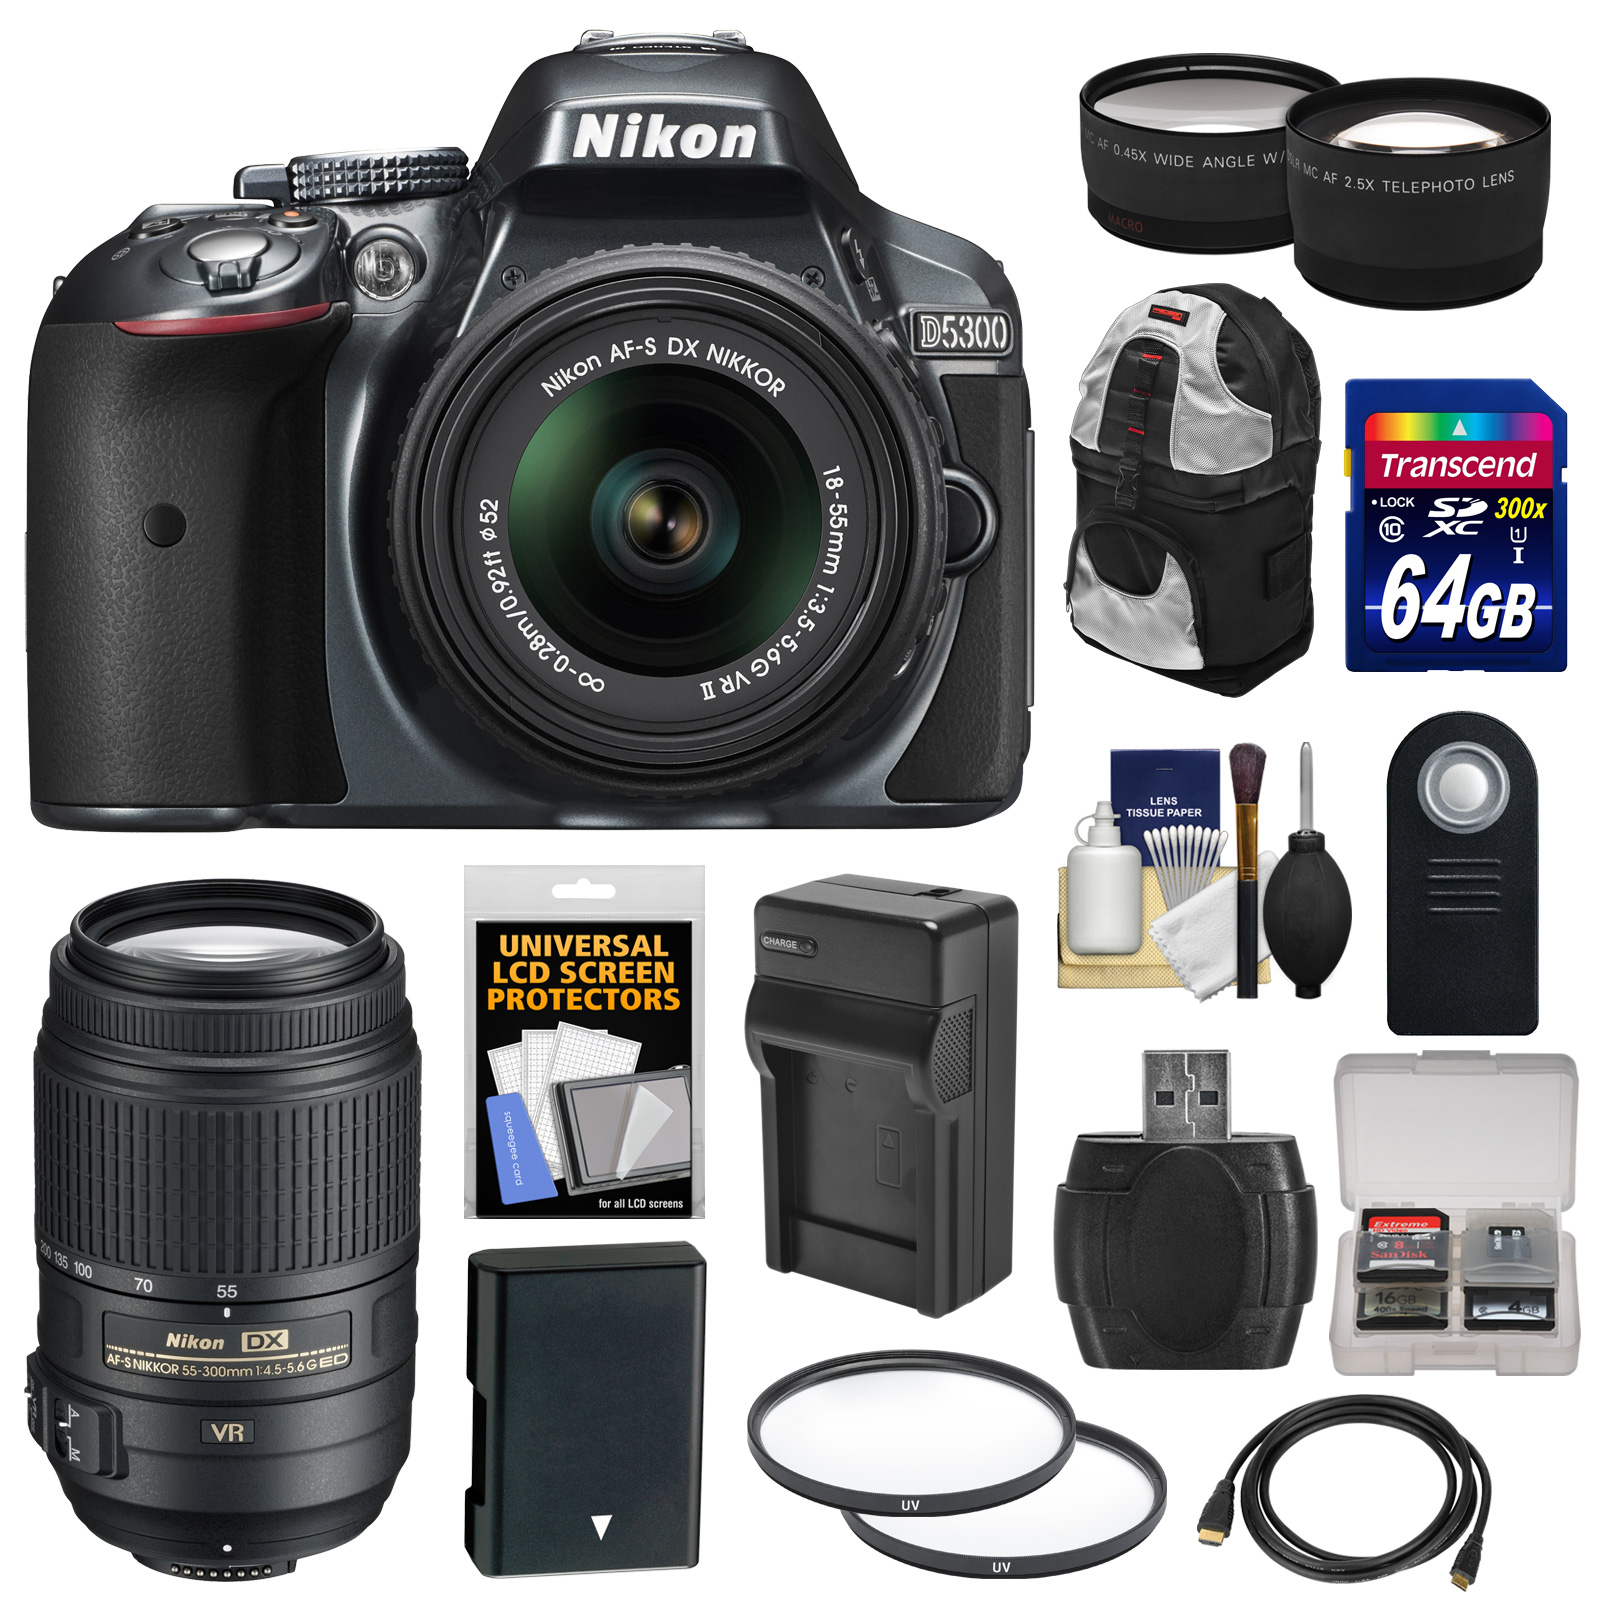 Nikon D5300 Digital SLR Camera & 18-55mm VR II Lens (Grey) with 55-300mm VR Lens + 64GB Card + Battery & Charger + Backpack + Tele/Wide Lens Kit